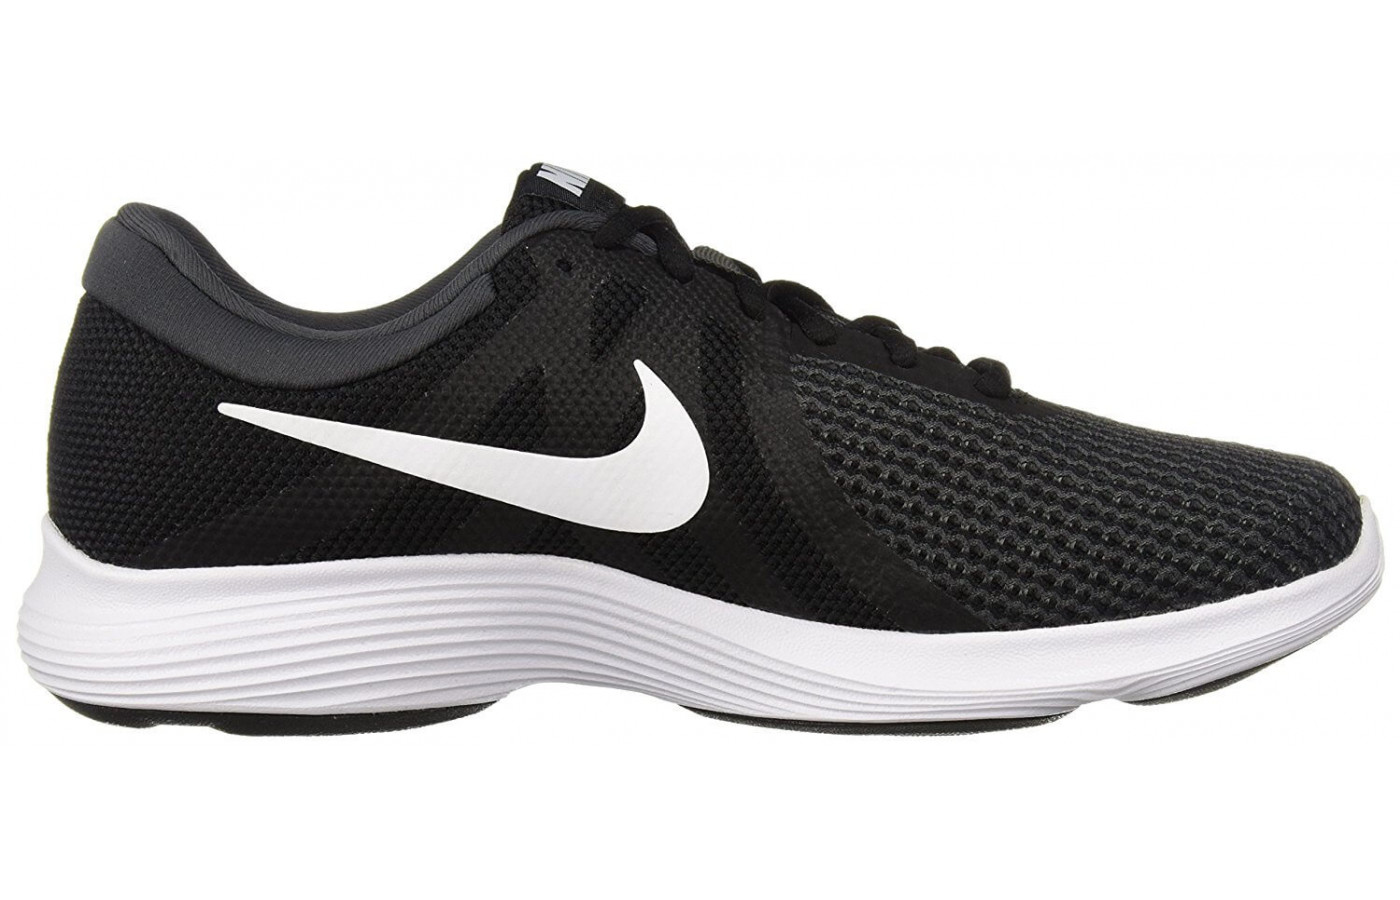 c820756c9fa29 Nike Revolution 4 Reviewed - To Buy or Not in May 2019